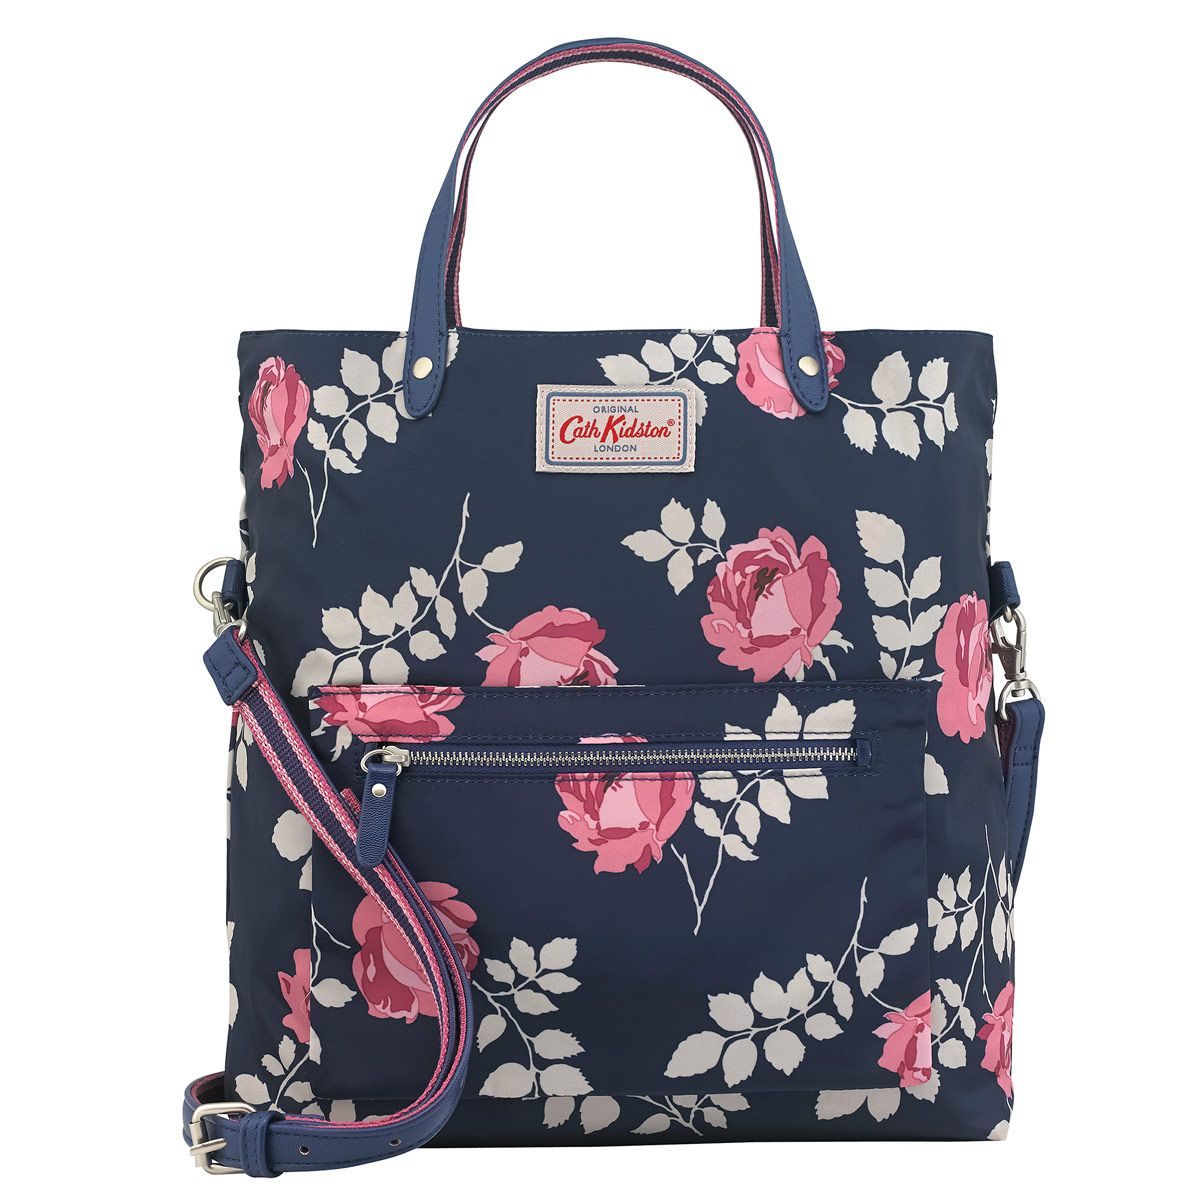 Take One Cross Body Bag Printed With Our Brooke Rosebud Design Turn It Outside And Discover A Whole New Colour On The Inside This Reversible Is Like